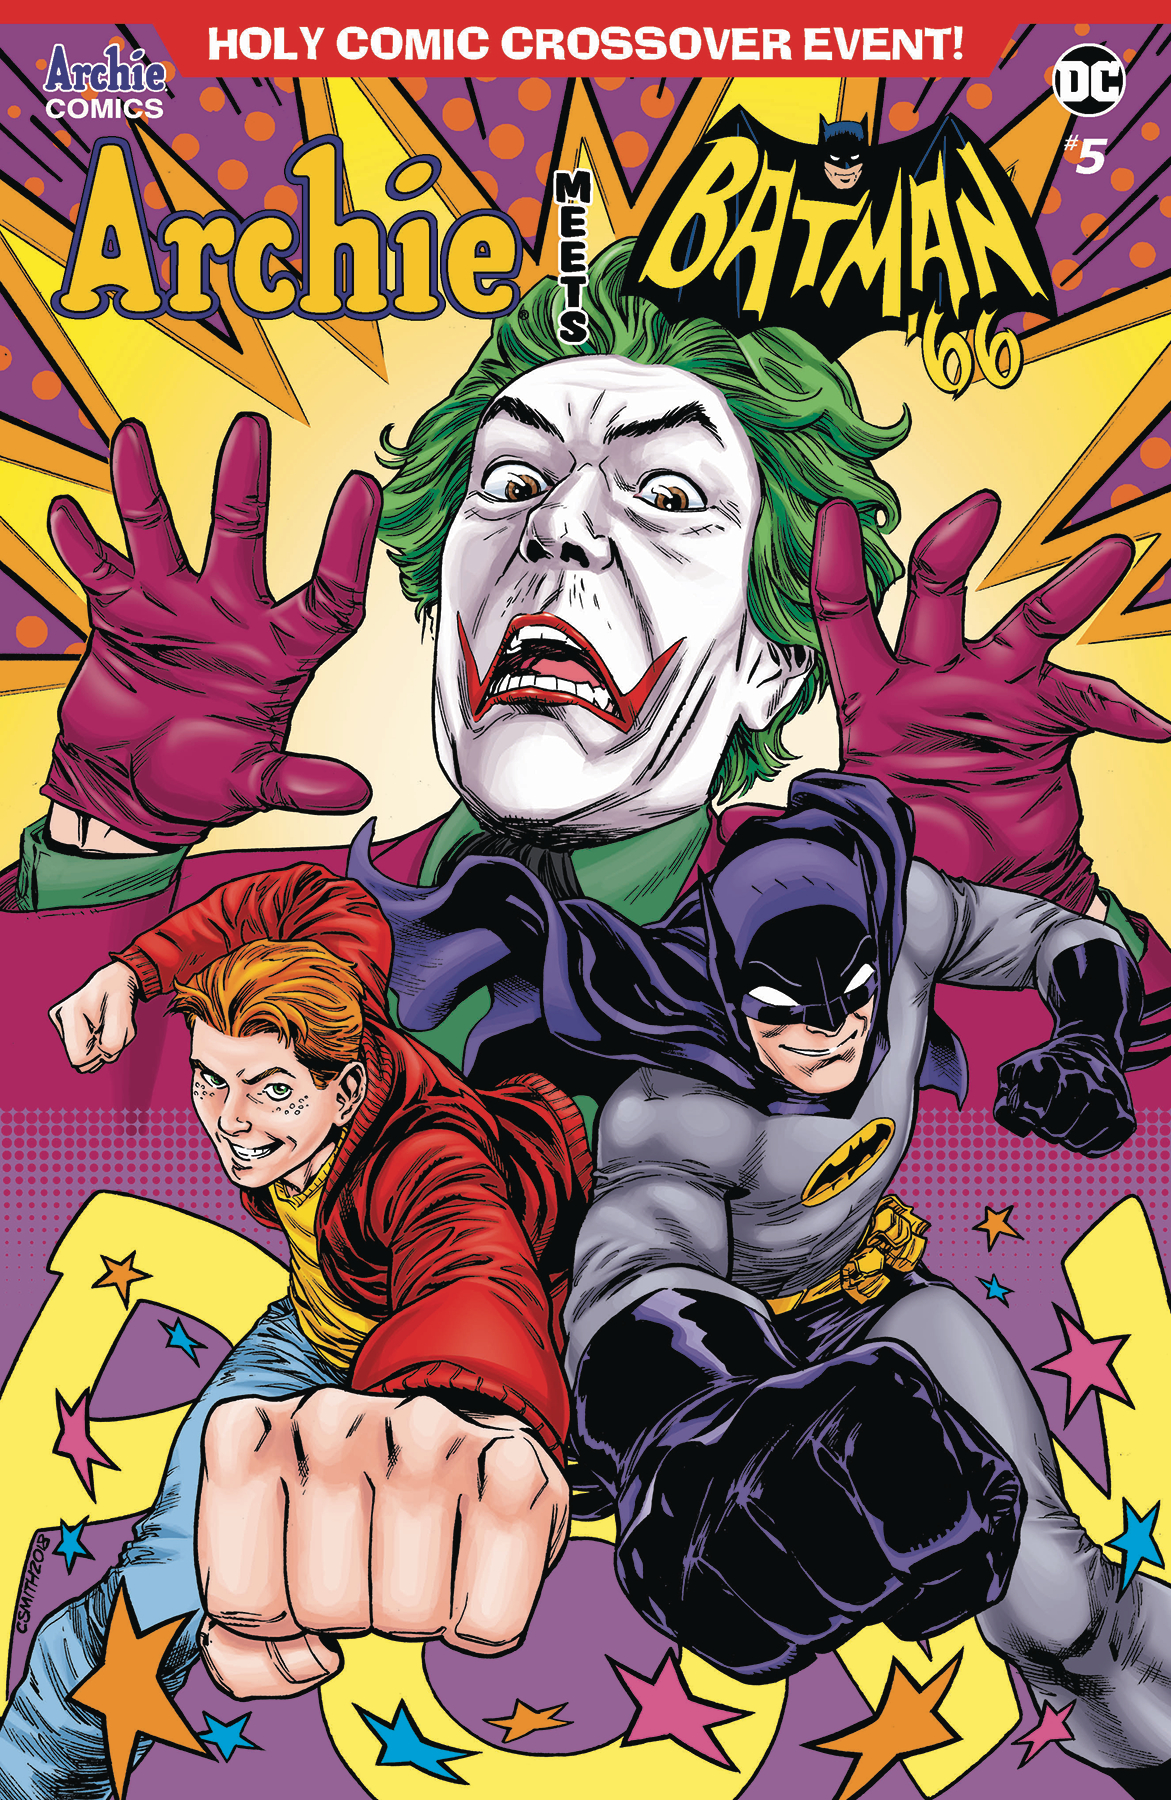 ARCHIE MEETS BATMAN 66 #5 CVR F SMITH